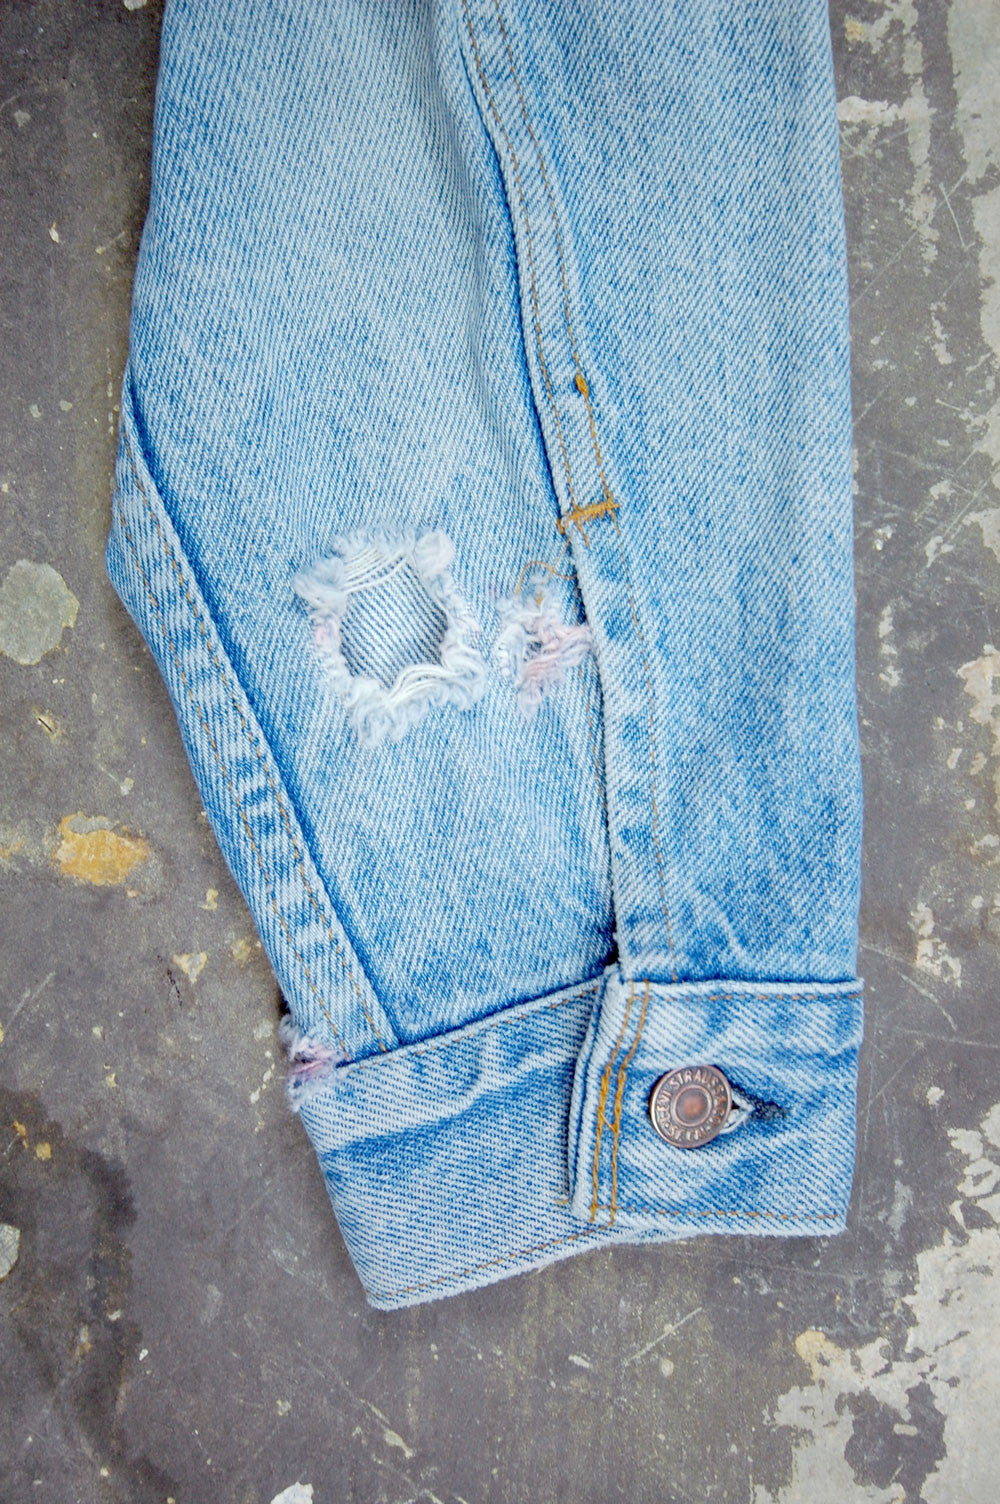 Vintage Levi's 4-Pocket USA Chain-Stitched Sparrow Artwork Denim Trucker Jacket